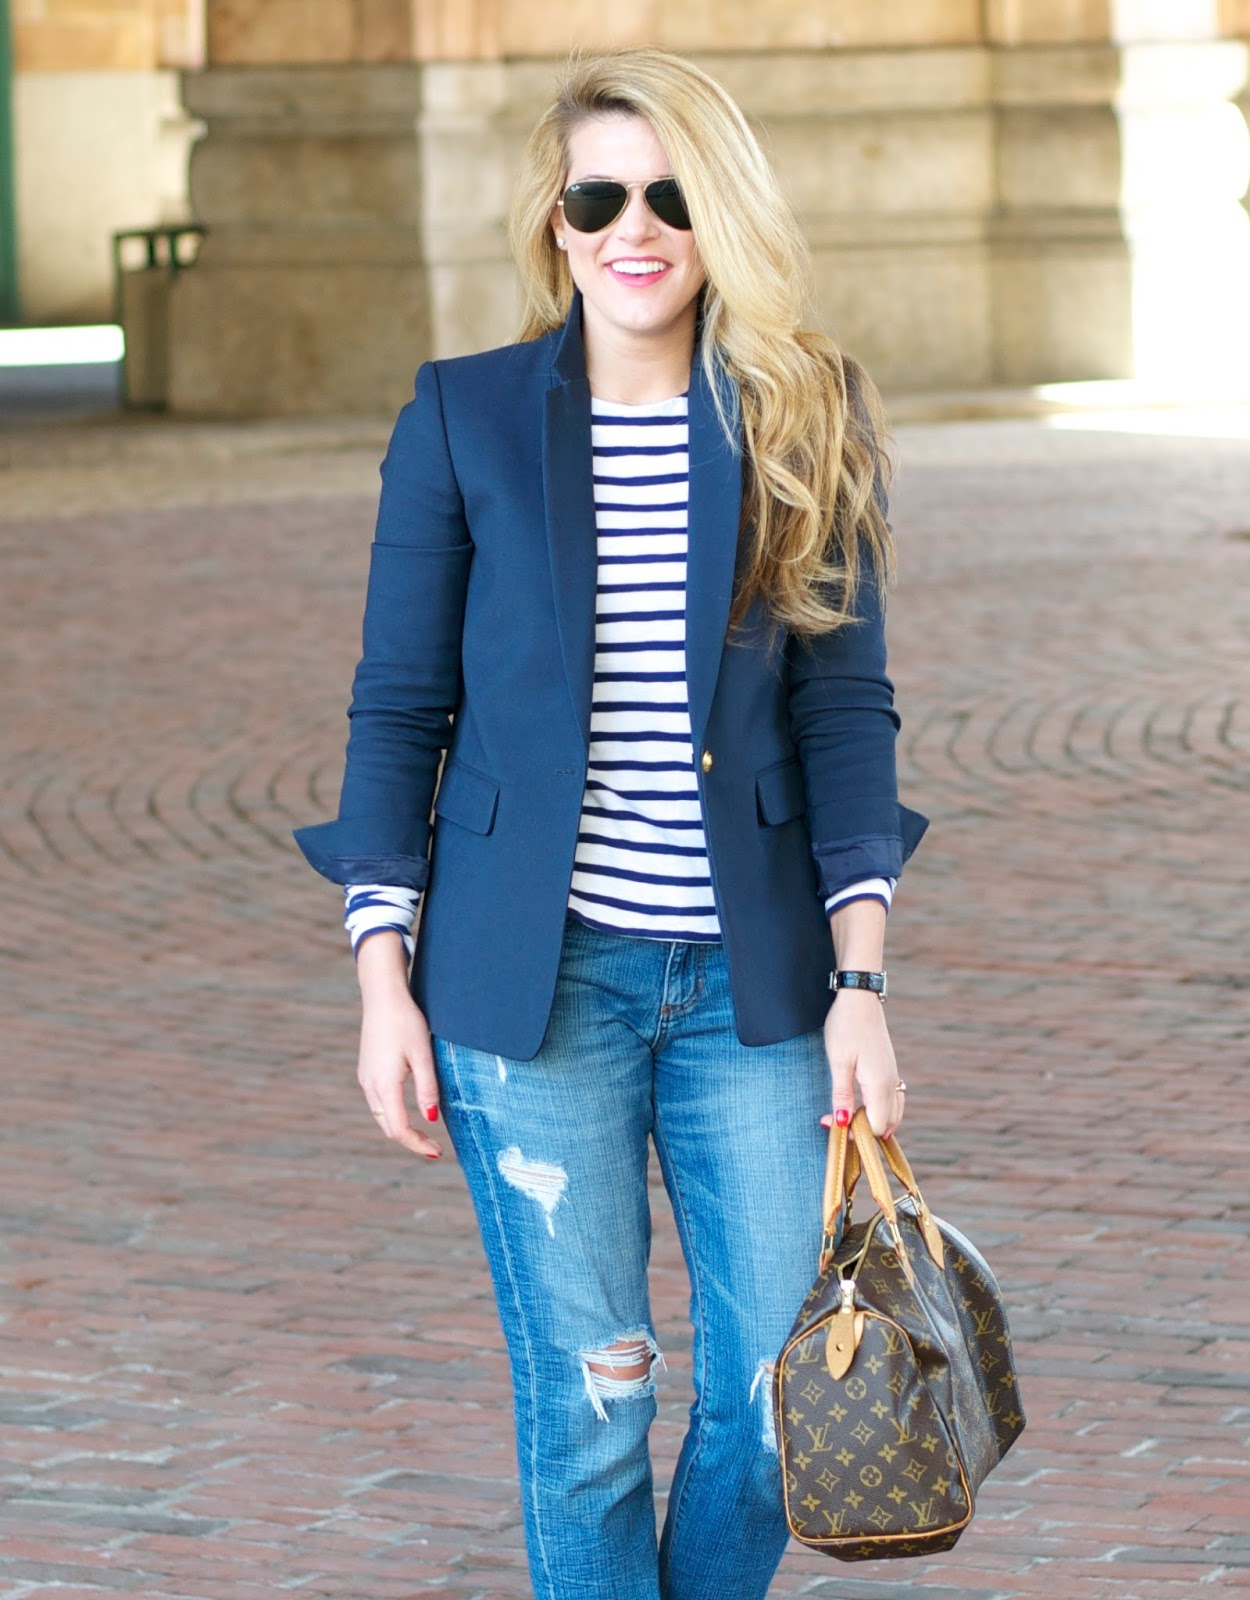 Summer Wind Navy Blazer + Distressed Boyfriend Jeans